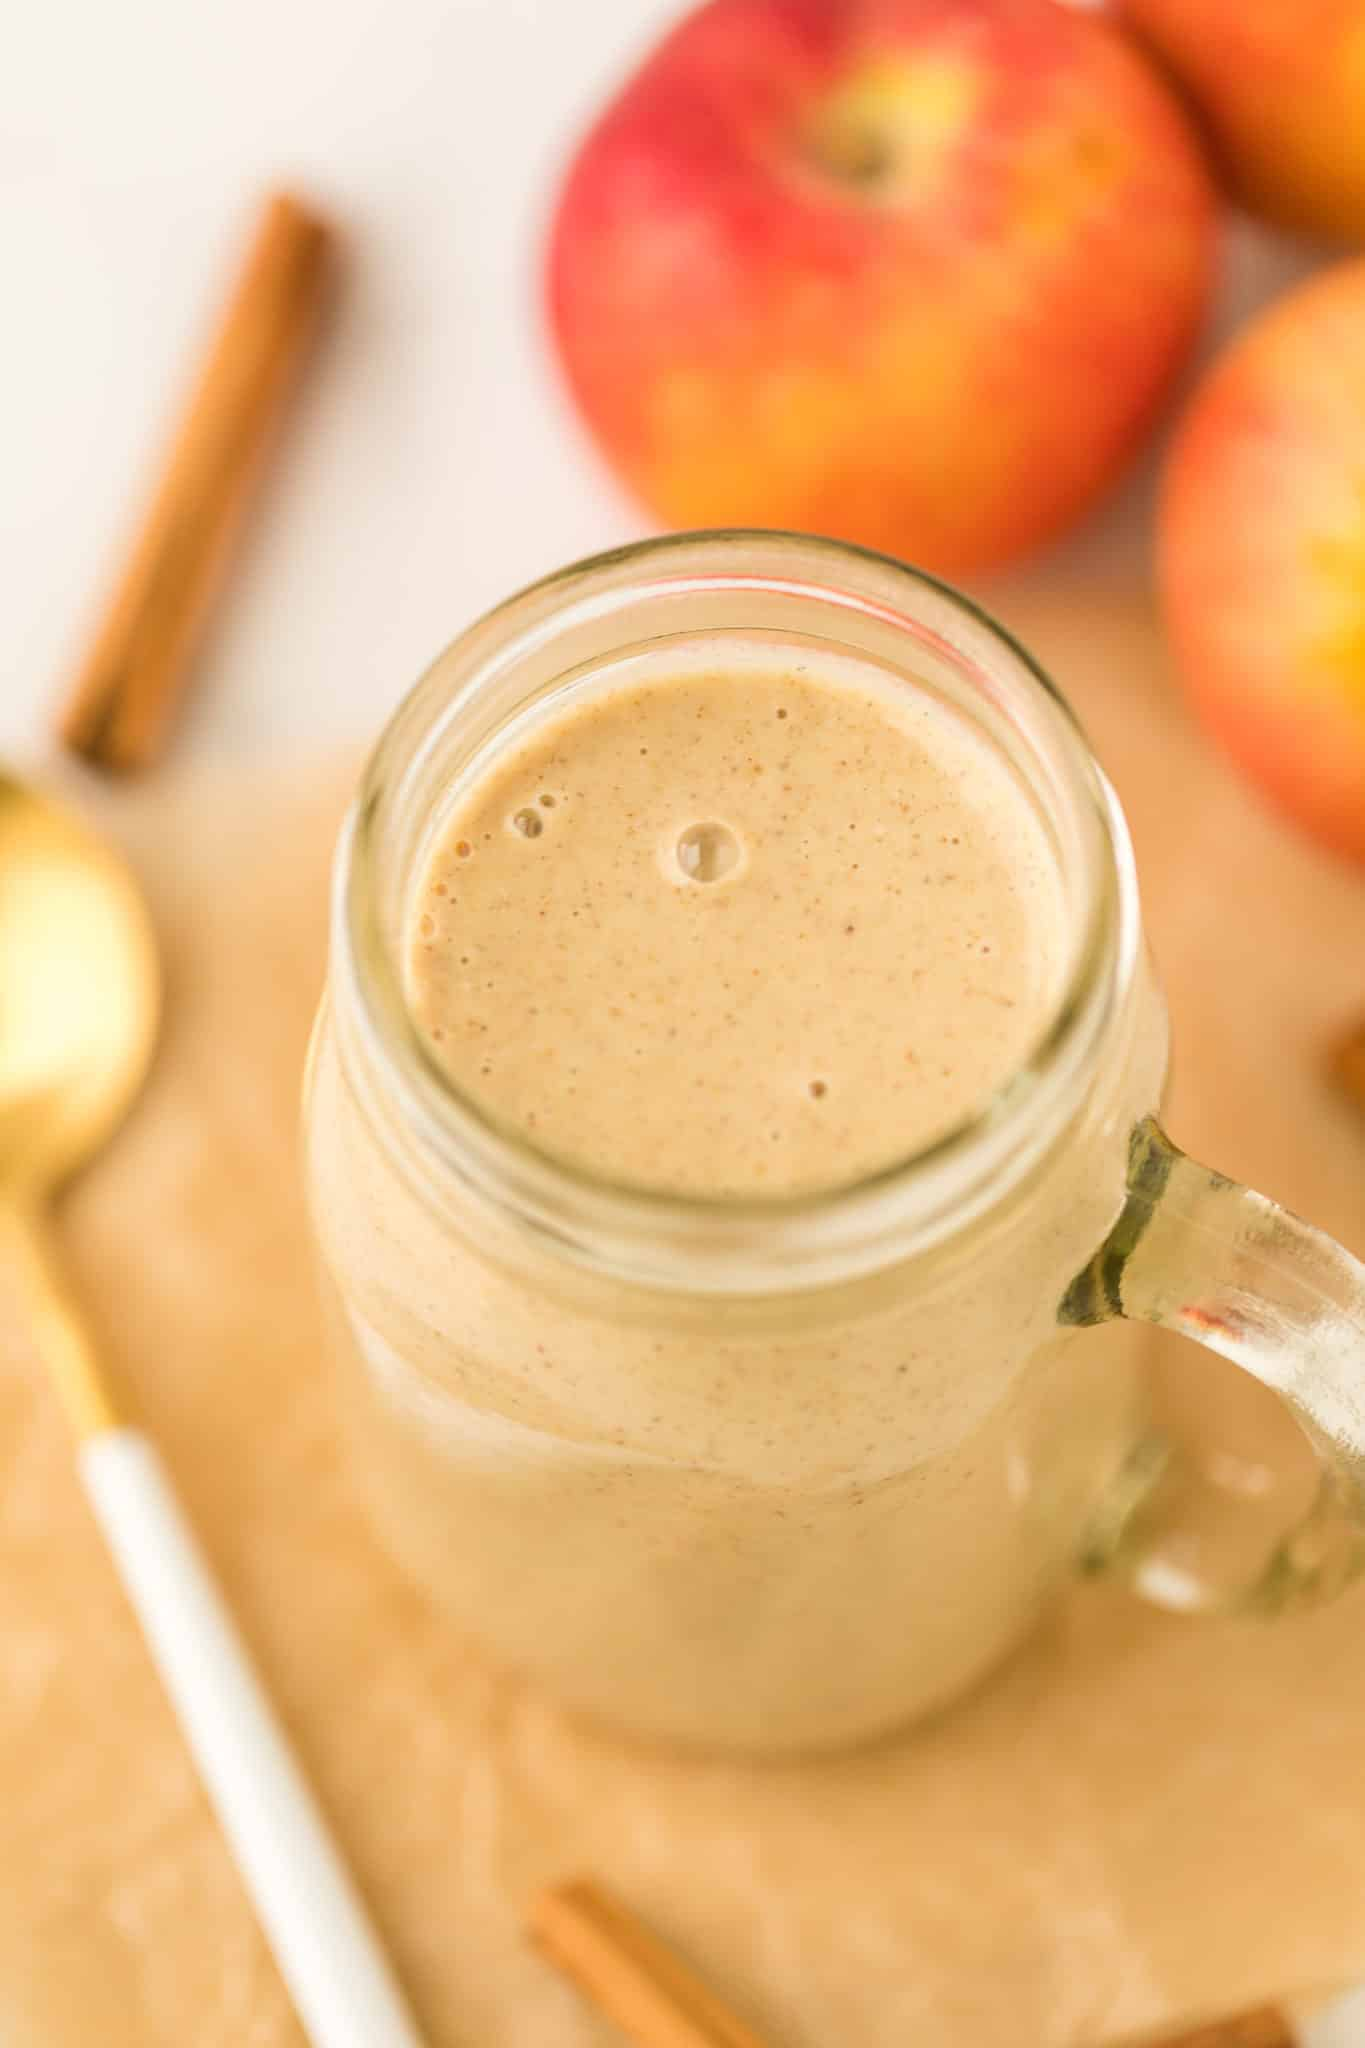 apple pie smoothie served in a glass jar on a table with fresh apples and cinnamon sticks